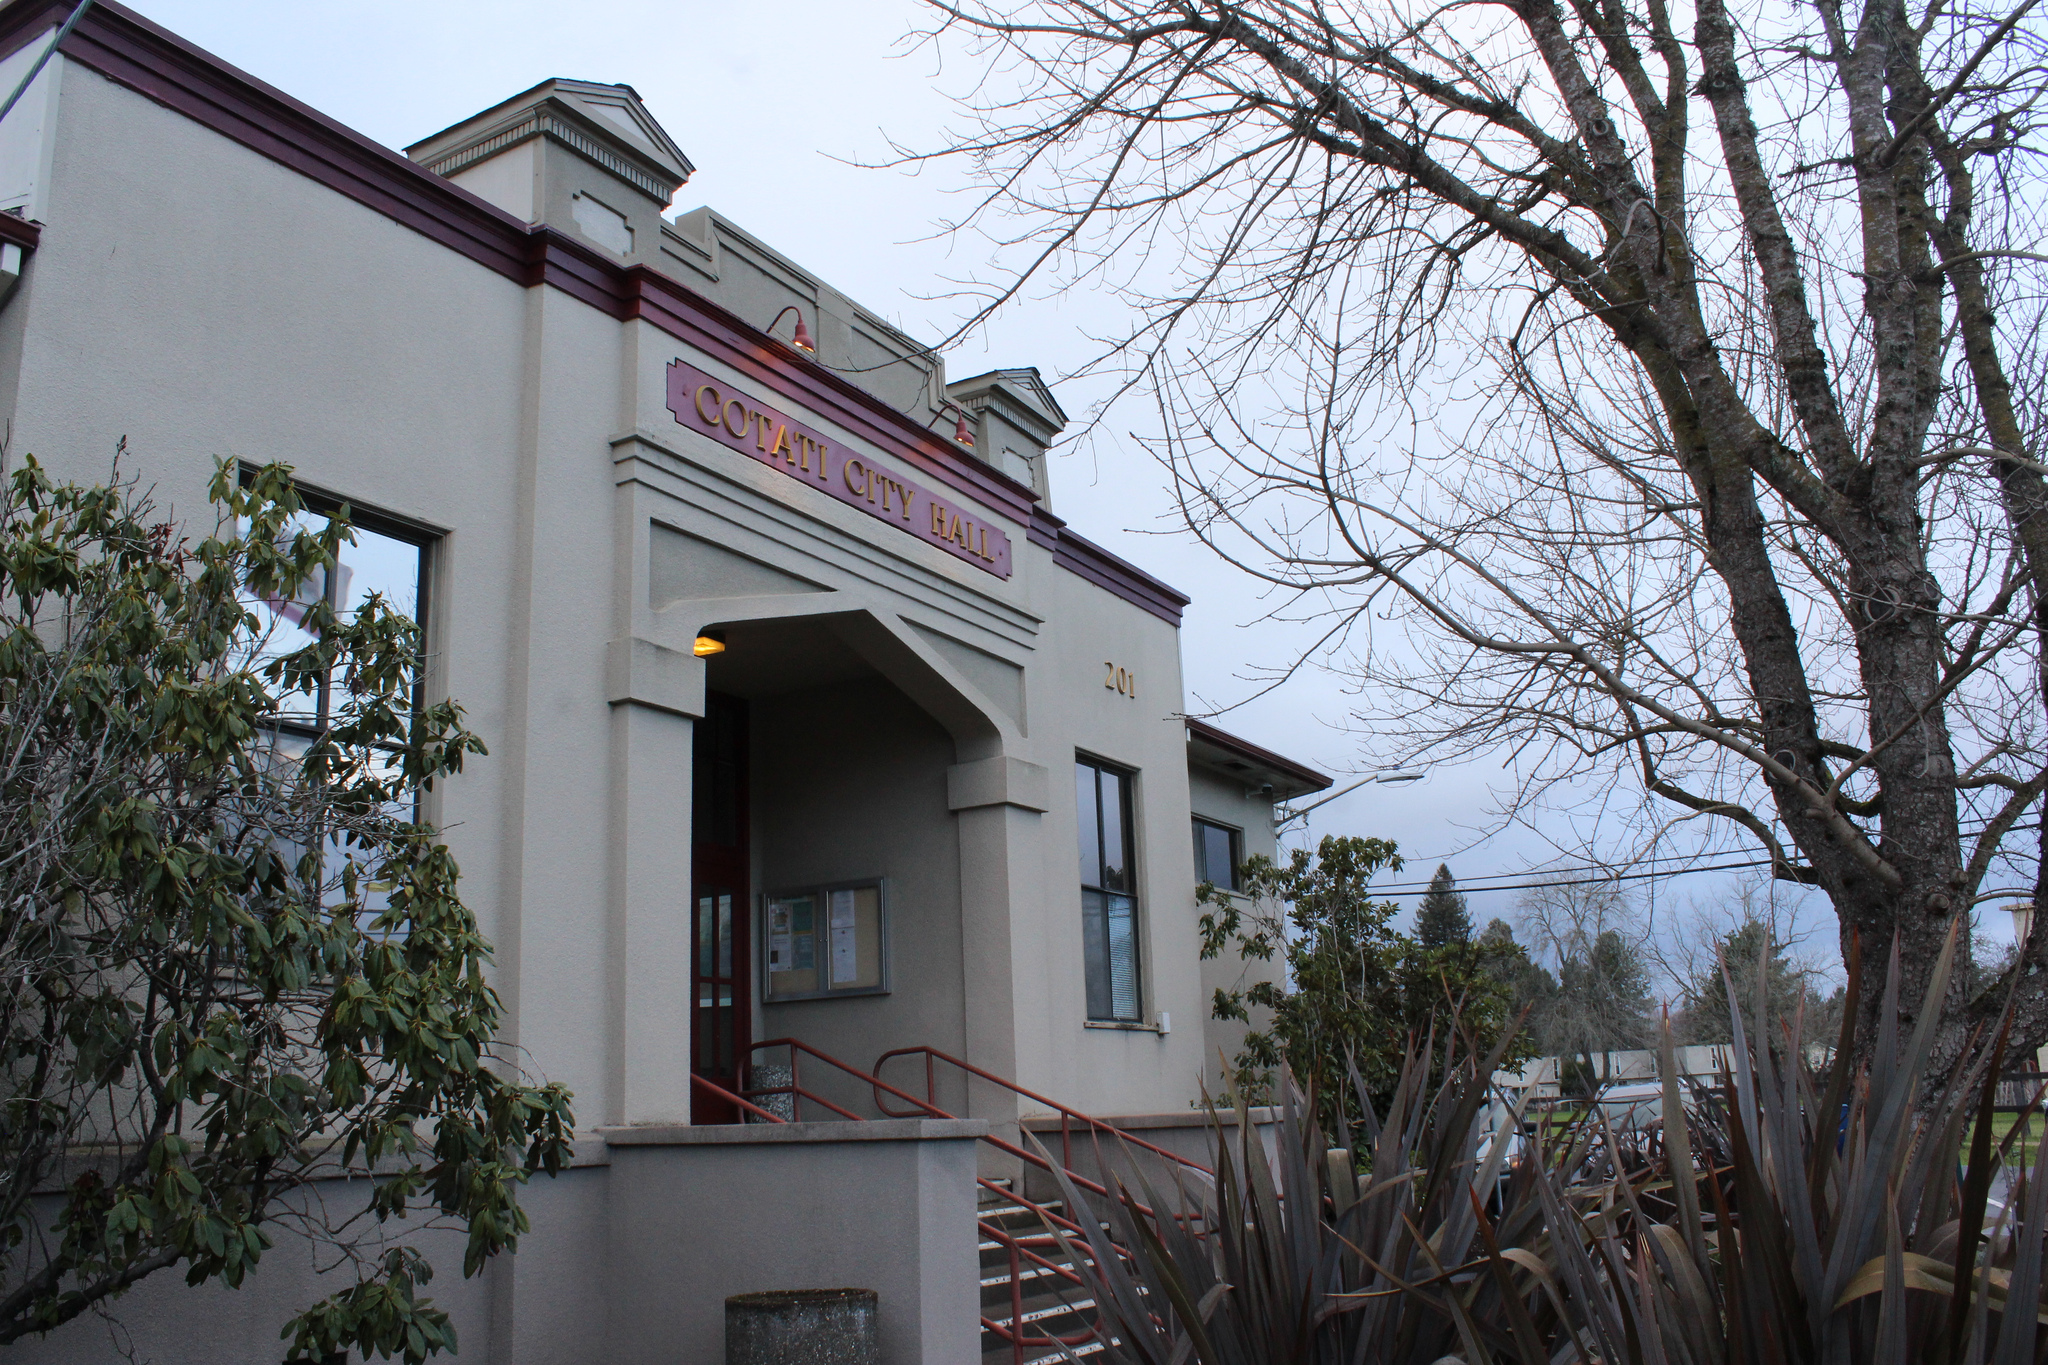 Cotati is aiming to have the minimum wage raised to $15 before the statewide 2023 deadline.